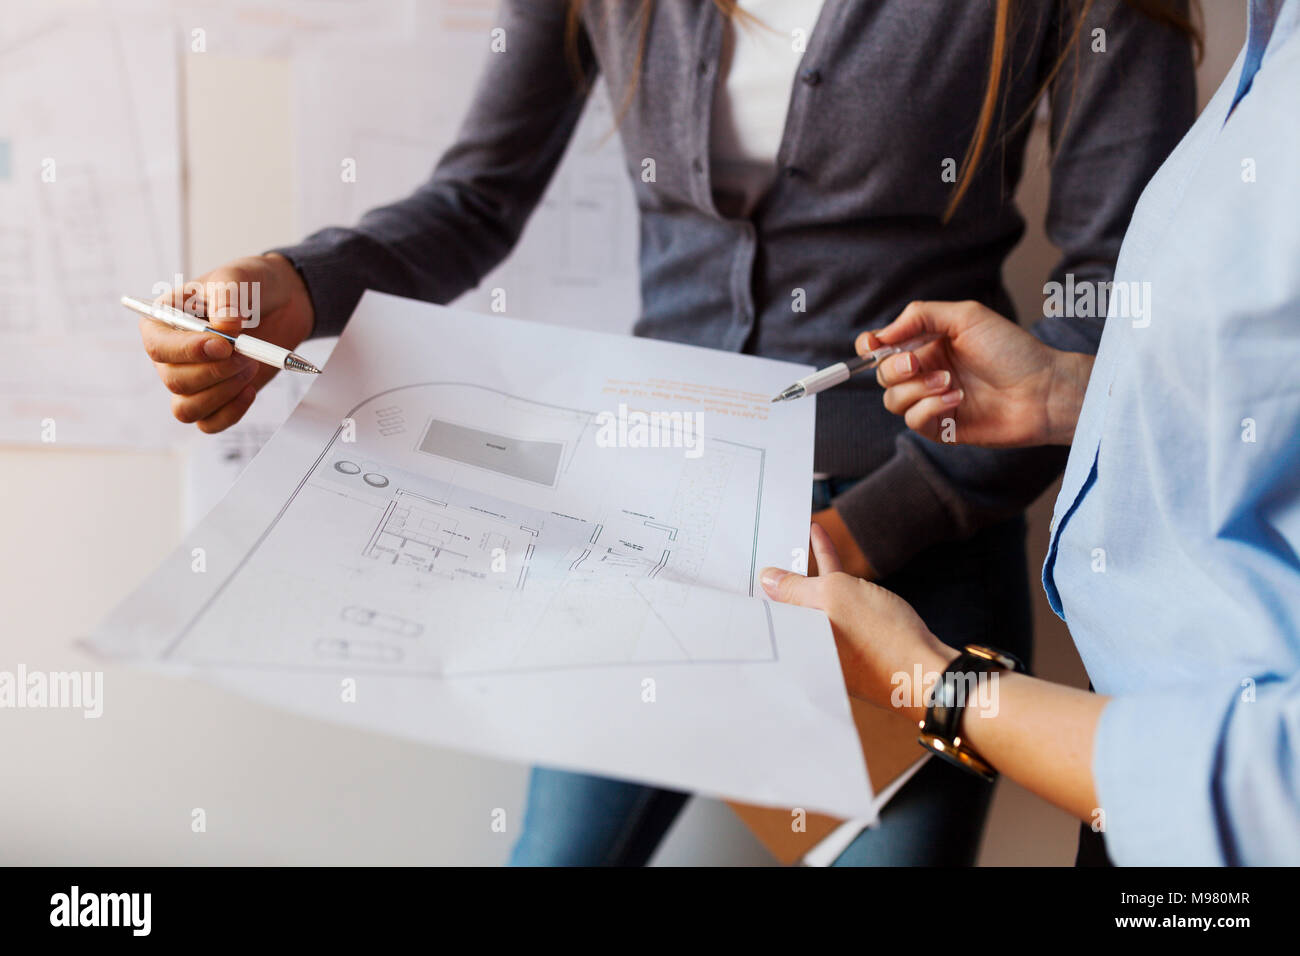 Female architects working on a project, looking at blueprint - Stock Image